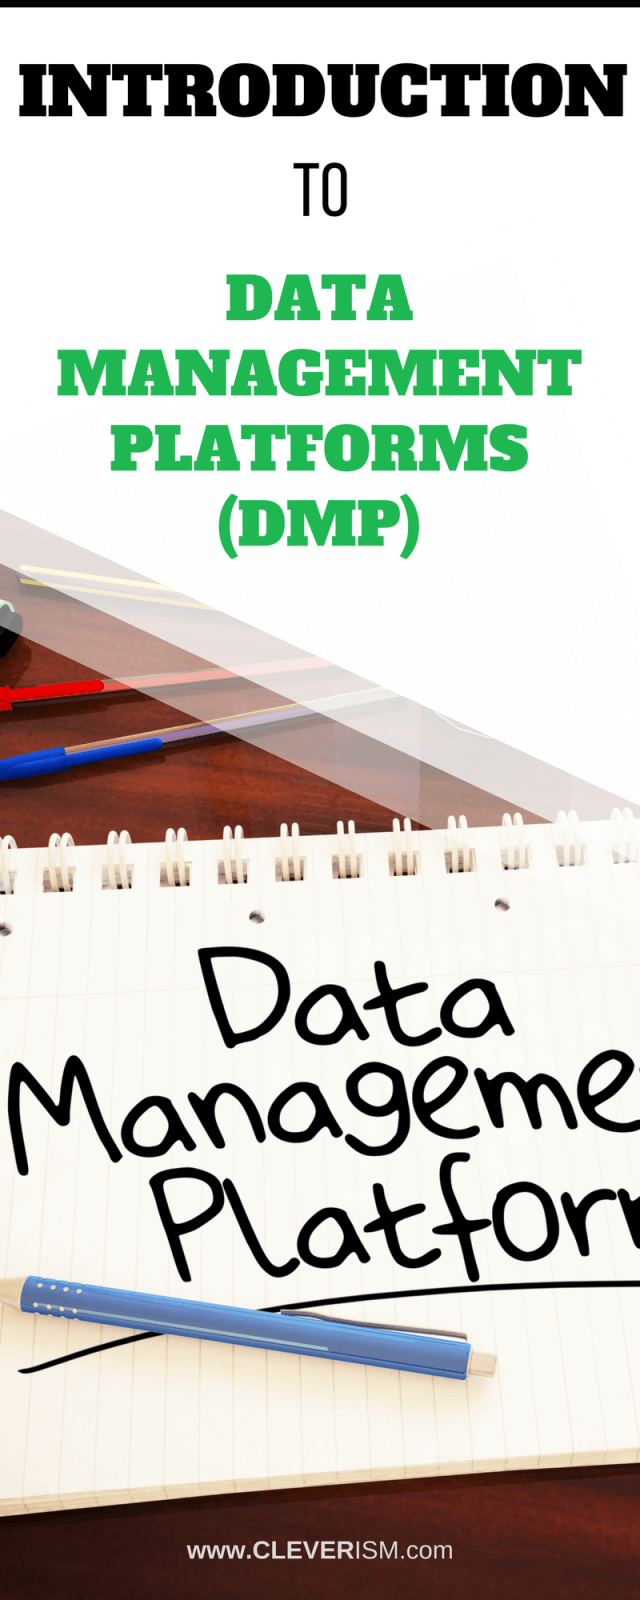 Introduction to Data Management Platforms (DMPs)